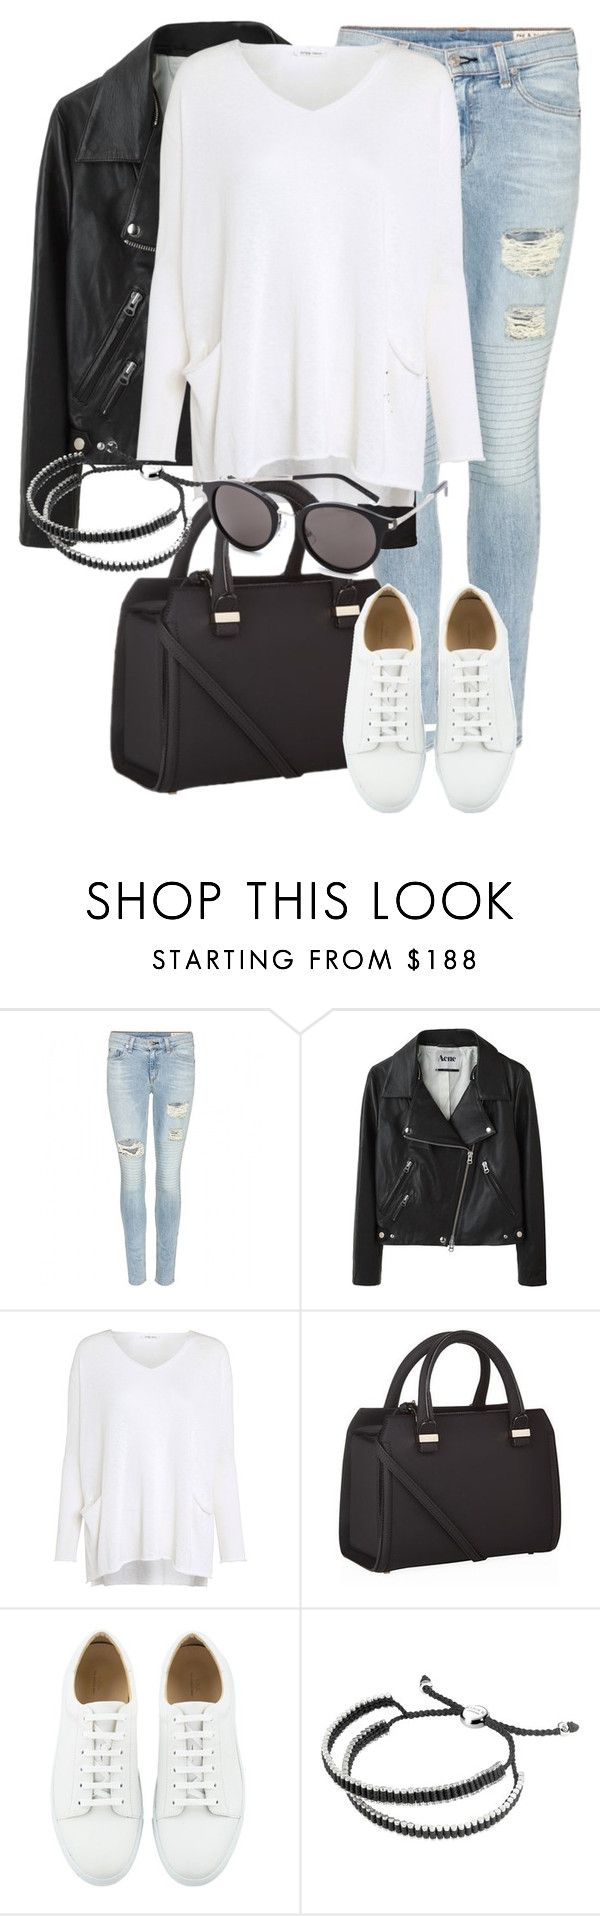 """Untitled #1929"" by annielizjung ❤ liked on Polyvore featuring rag & bone, Acne Studios, Crea Concept, Victoria Beckham, Links of London and Yves Saint Laurent"